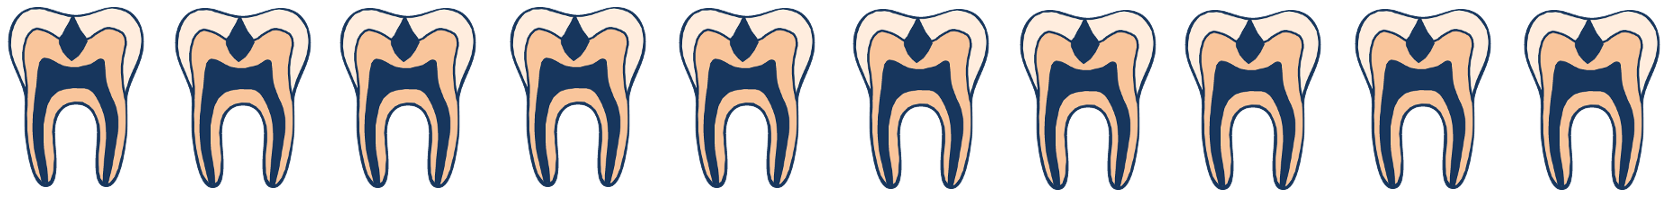 divider of the fluoride teeth page showing multiple copies of a cross-section of a tooth